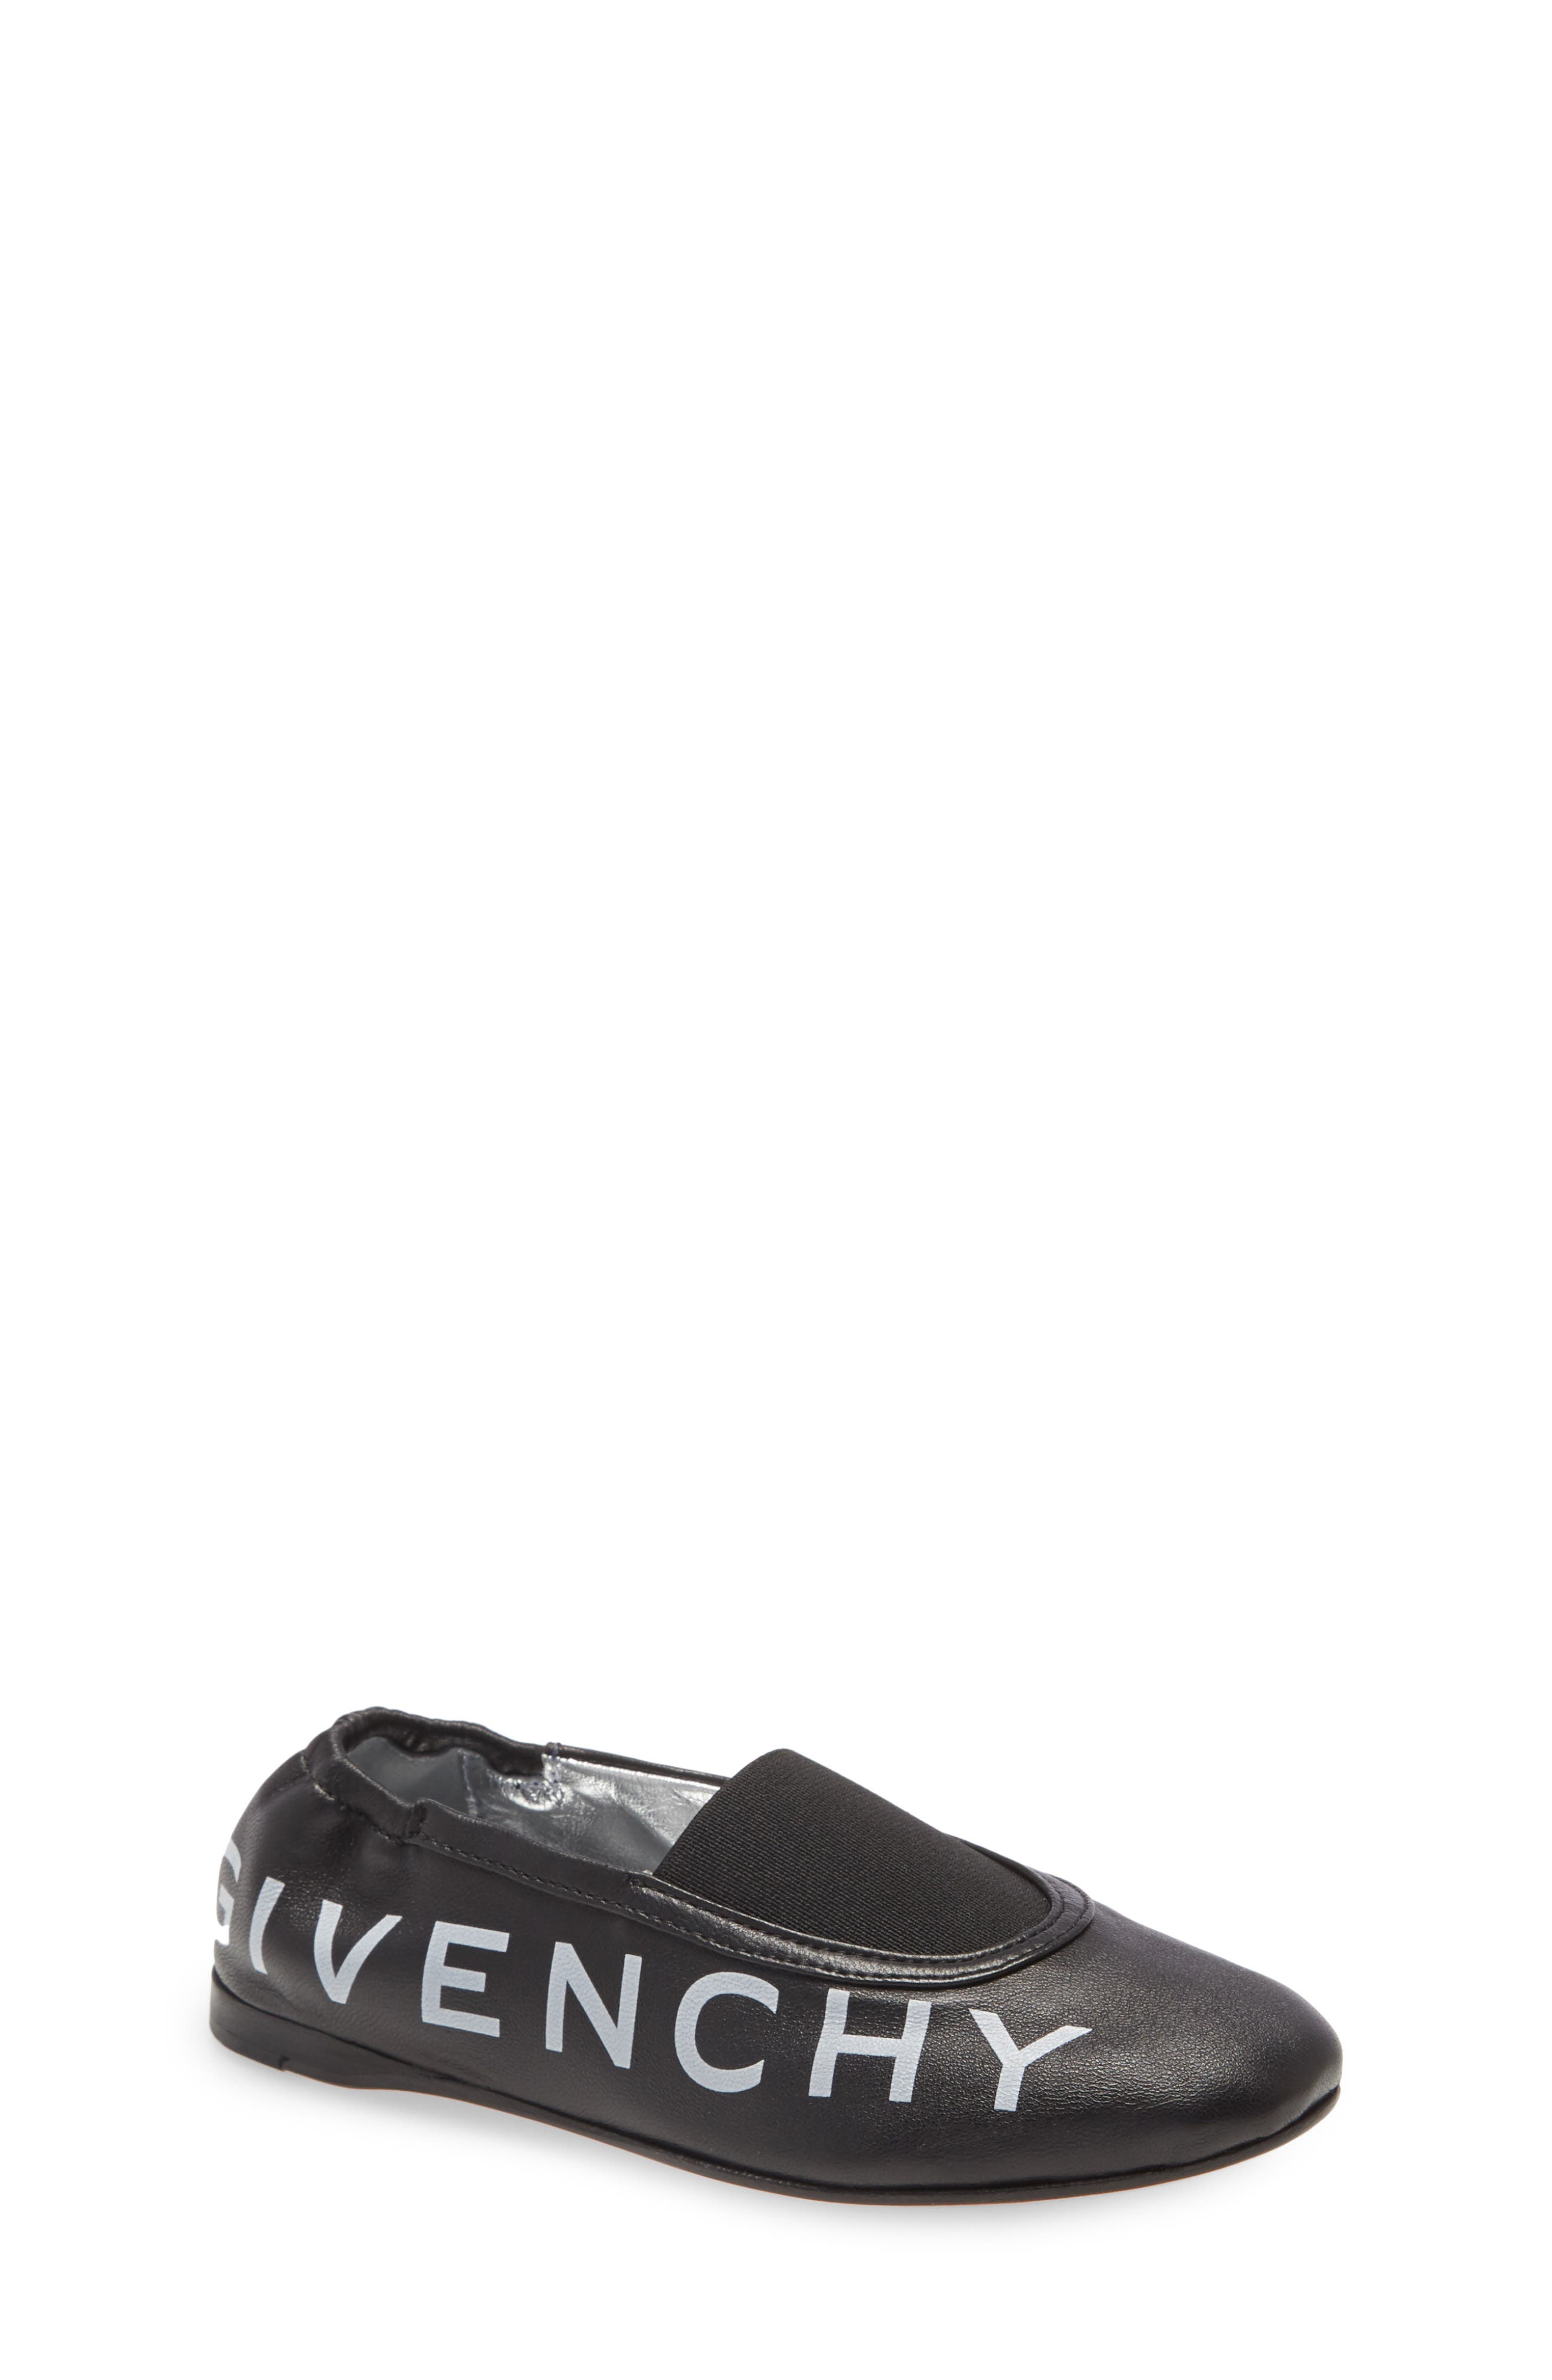 Kids For Girls' Givenchy Shoes | Nordstrom